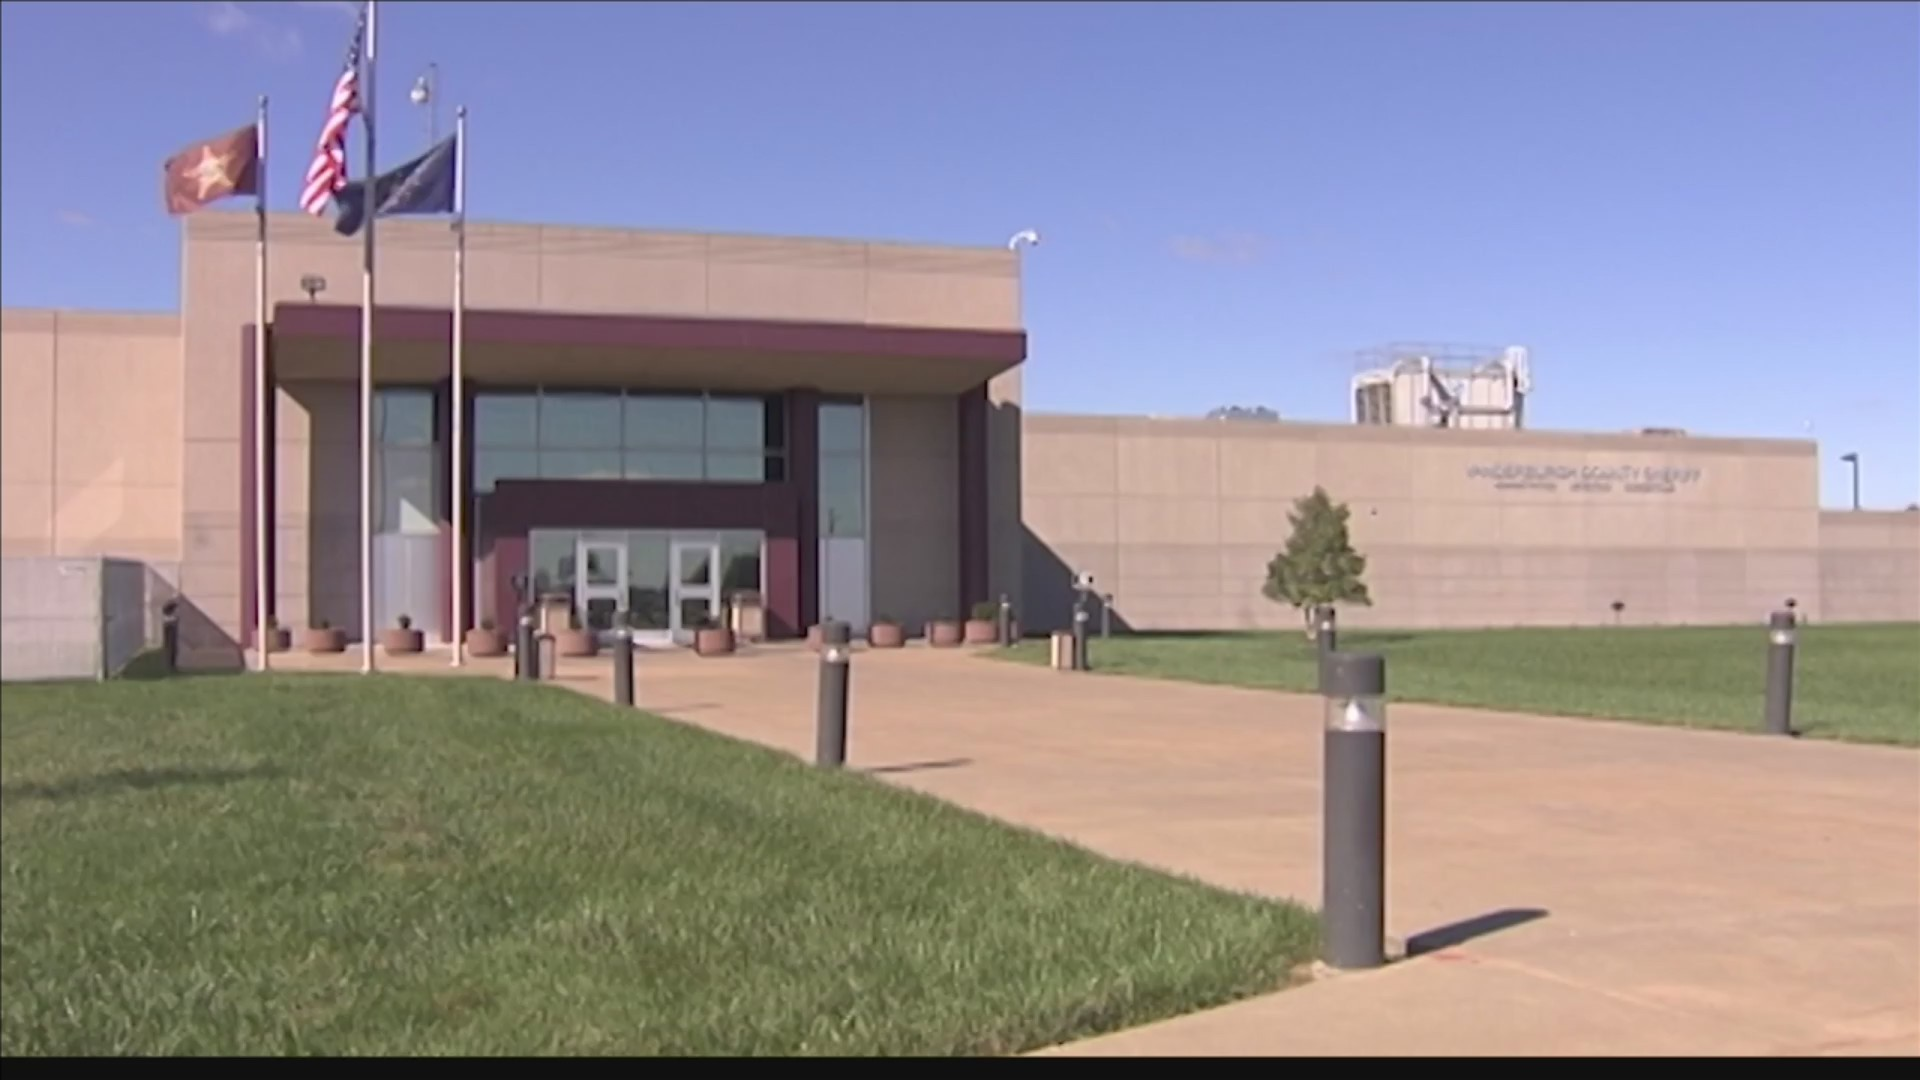 Vanderburgh County Jail looks to add more than 700 beds to meet capacity needs